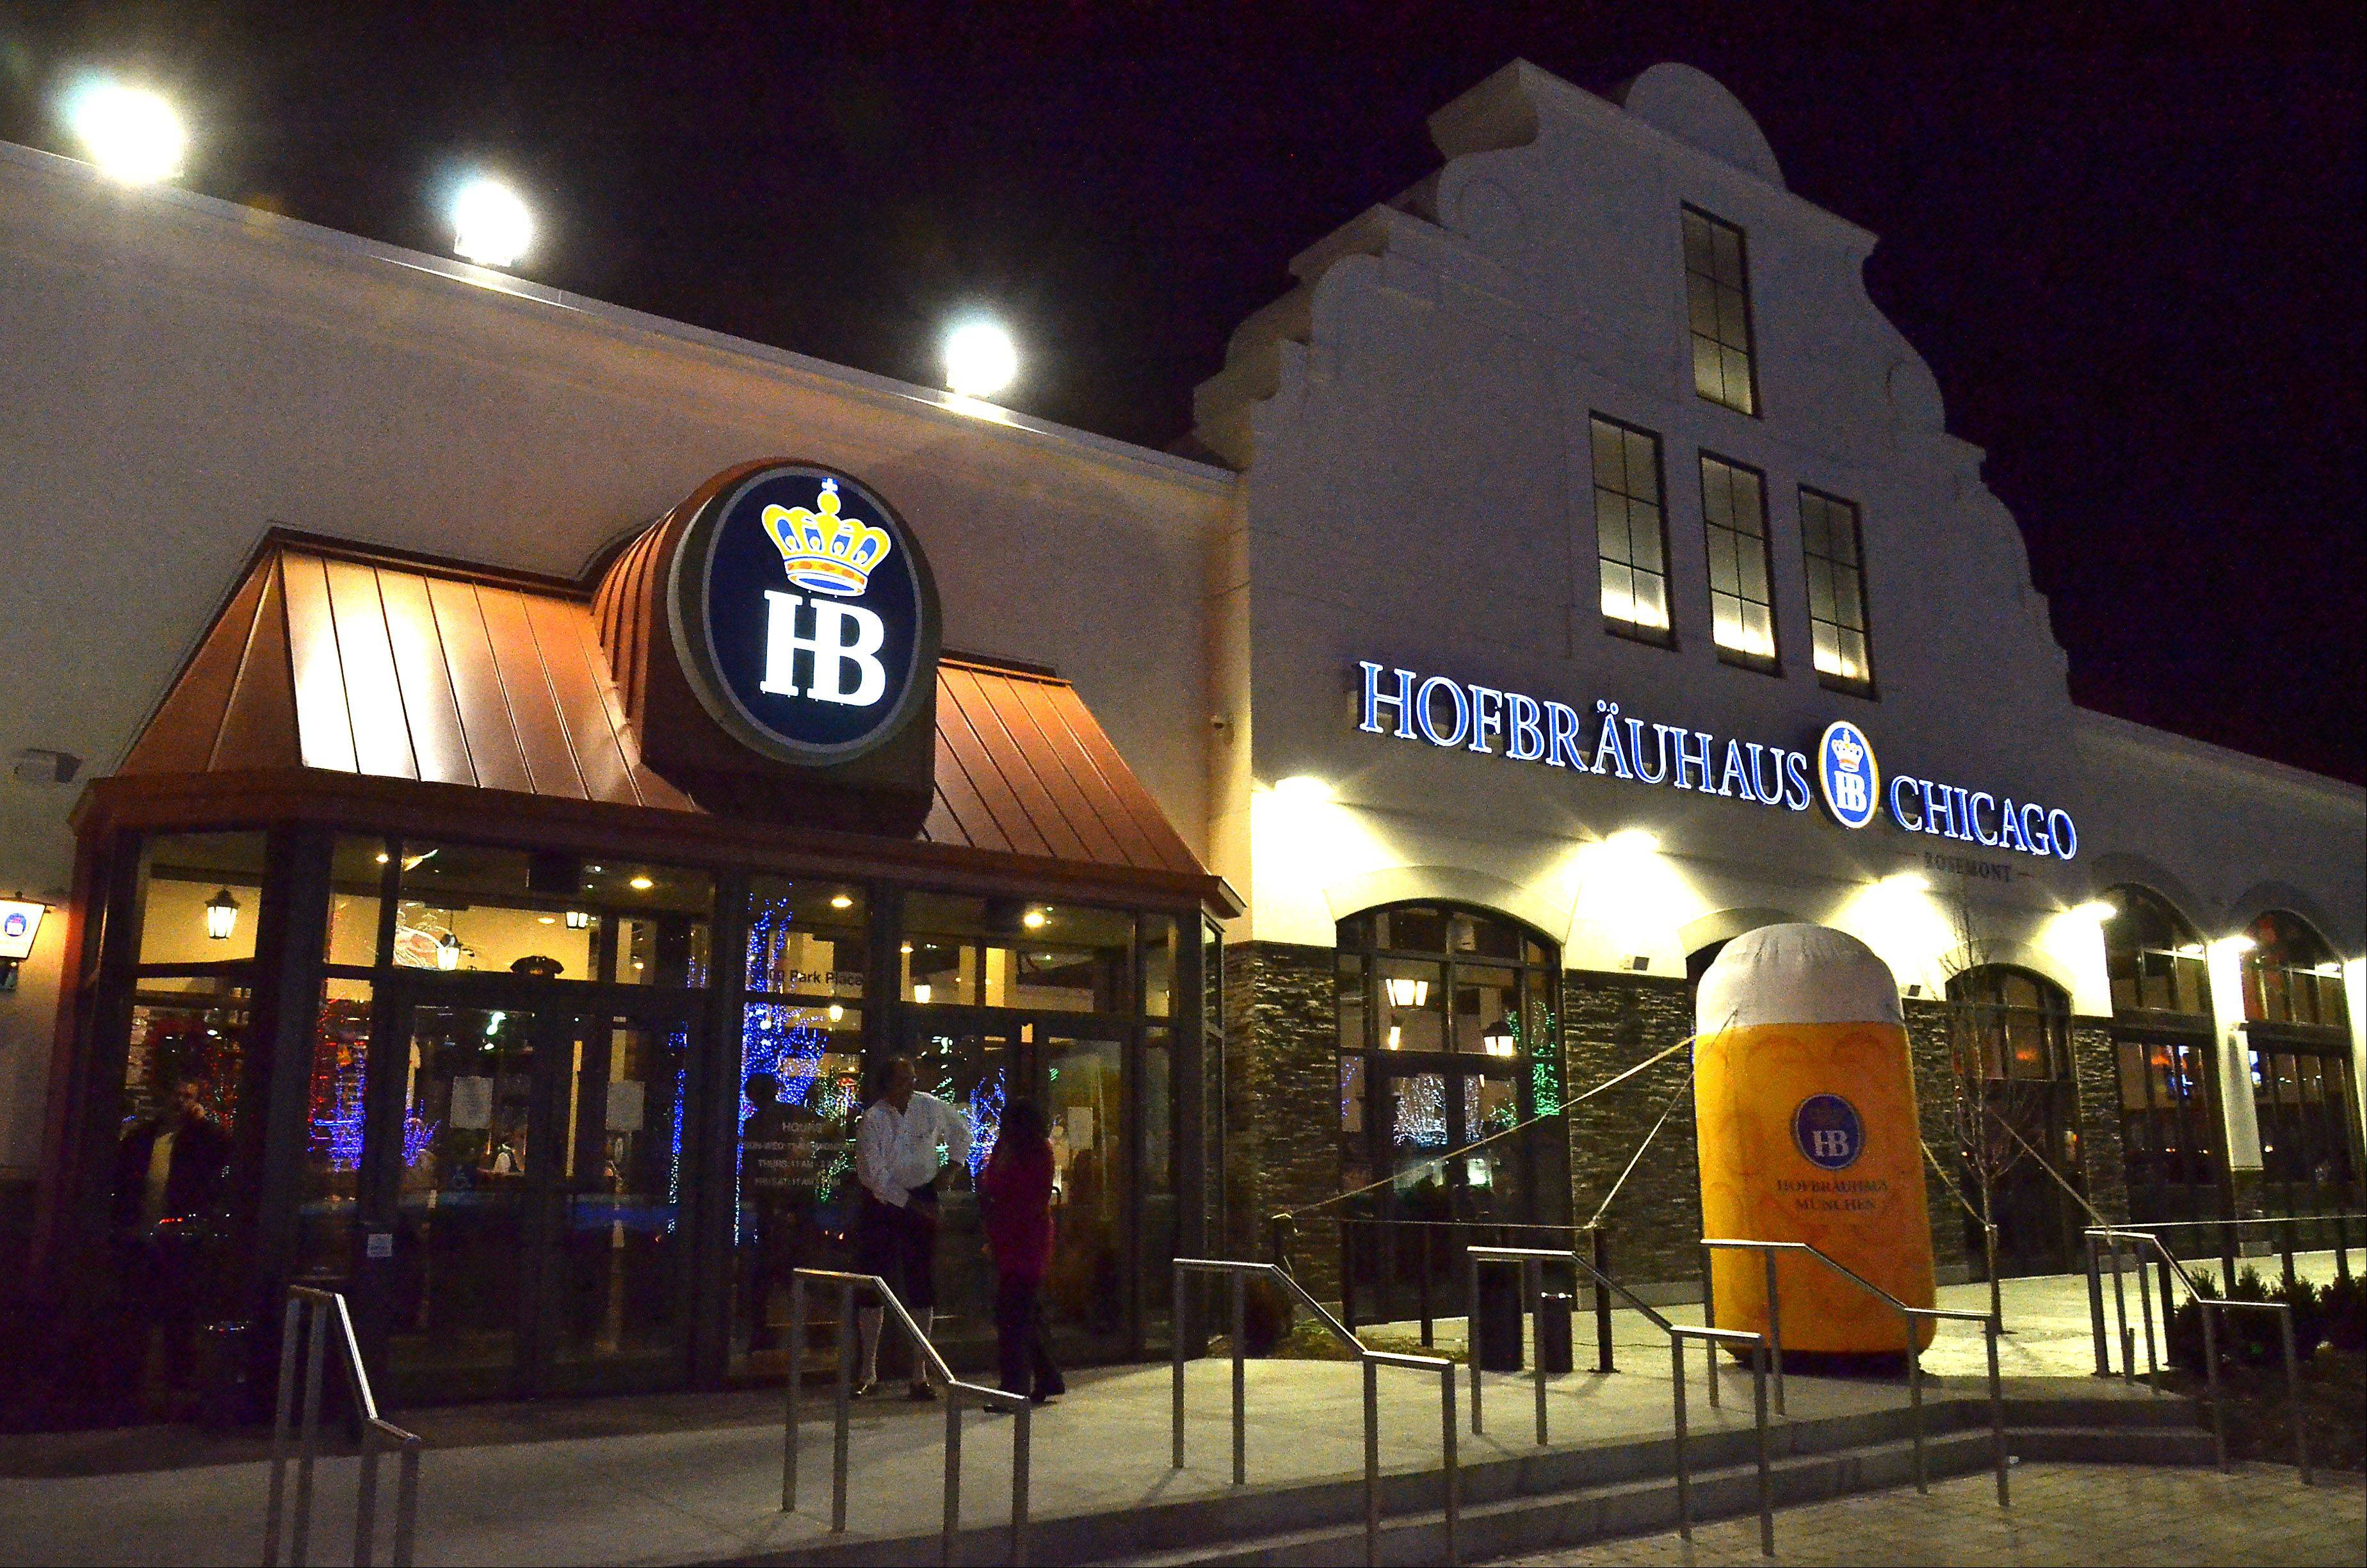 The new Hofbrauhaus Chicago in Rosemont will seat 700 inside and 300 in the outdoor beer garden.